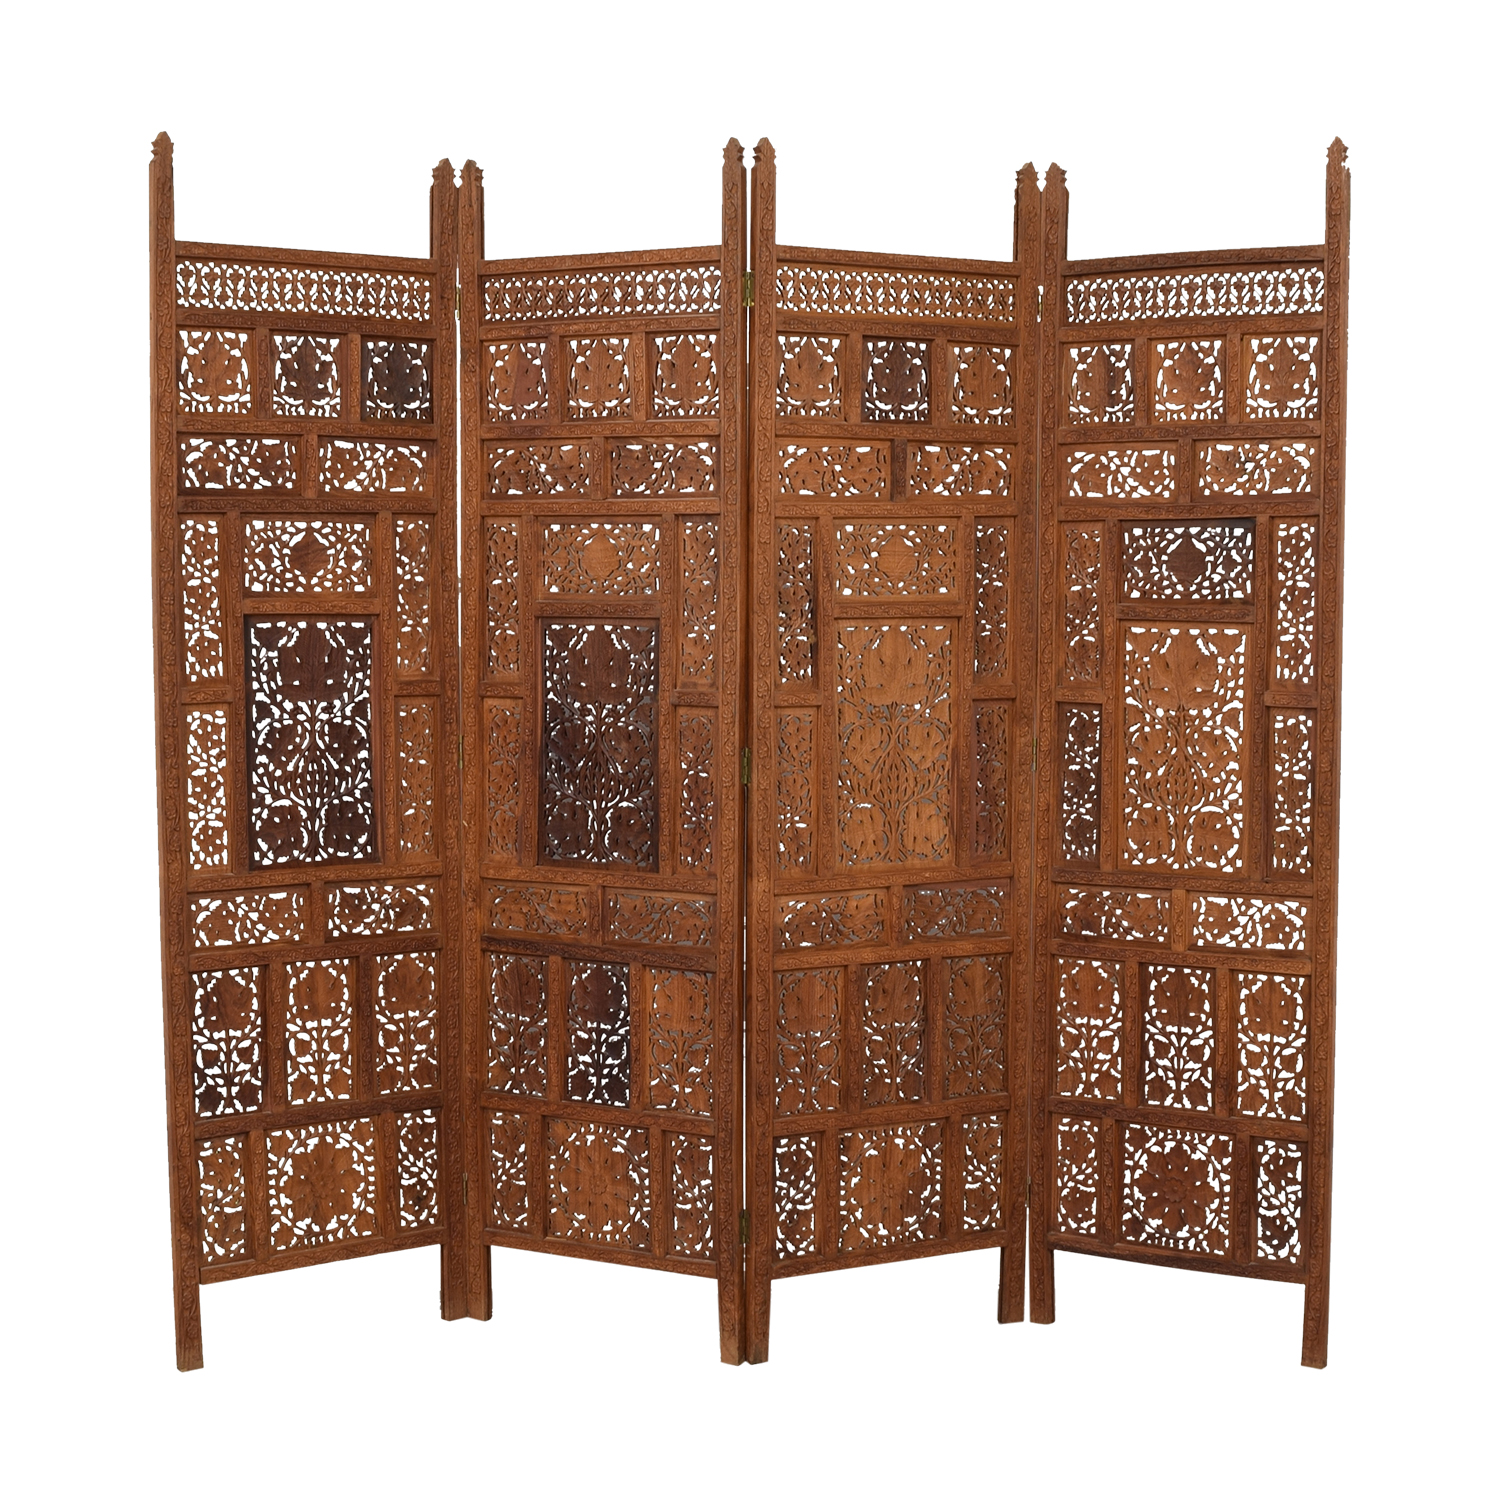 4f87e43d4d7a7 62% OFF - Antique Carved Wood Screen   Decor